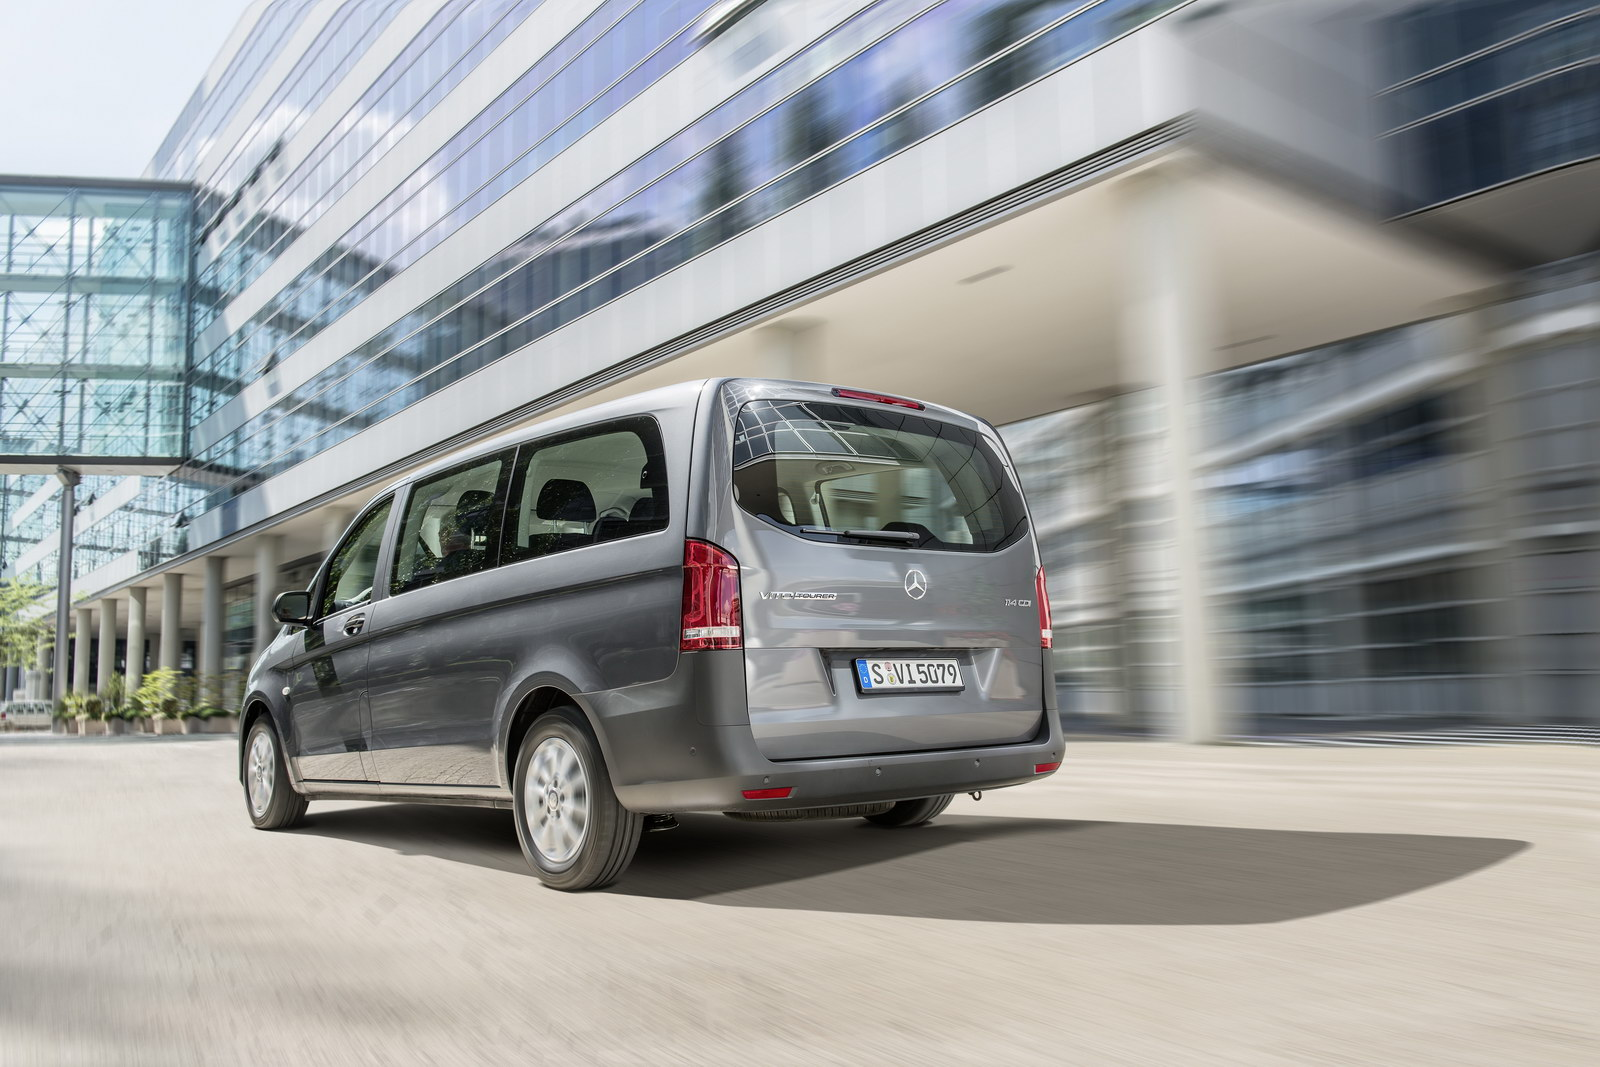 2014 mercedes benz vito revealed shares underpinnings with v class autoevolution. Black Bedroom Furniture Sets. Home Design Ideas